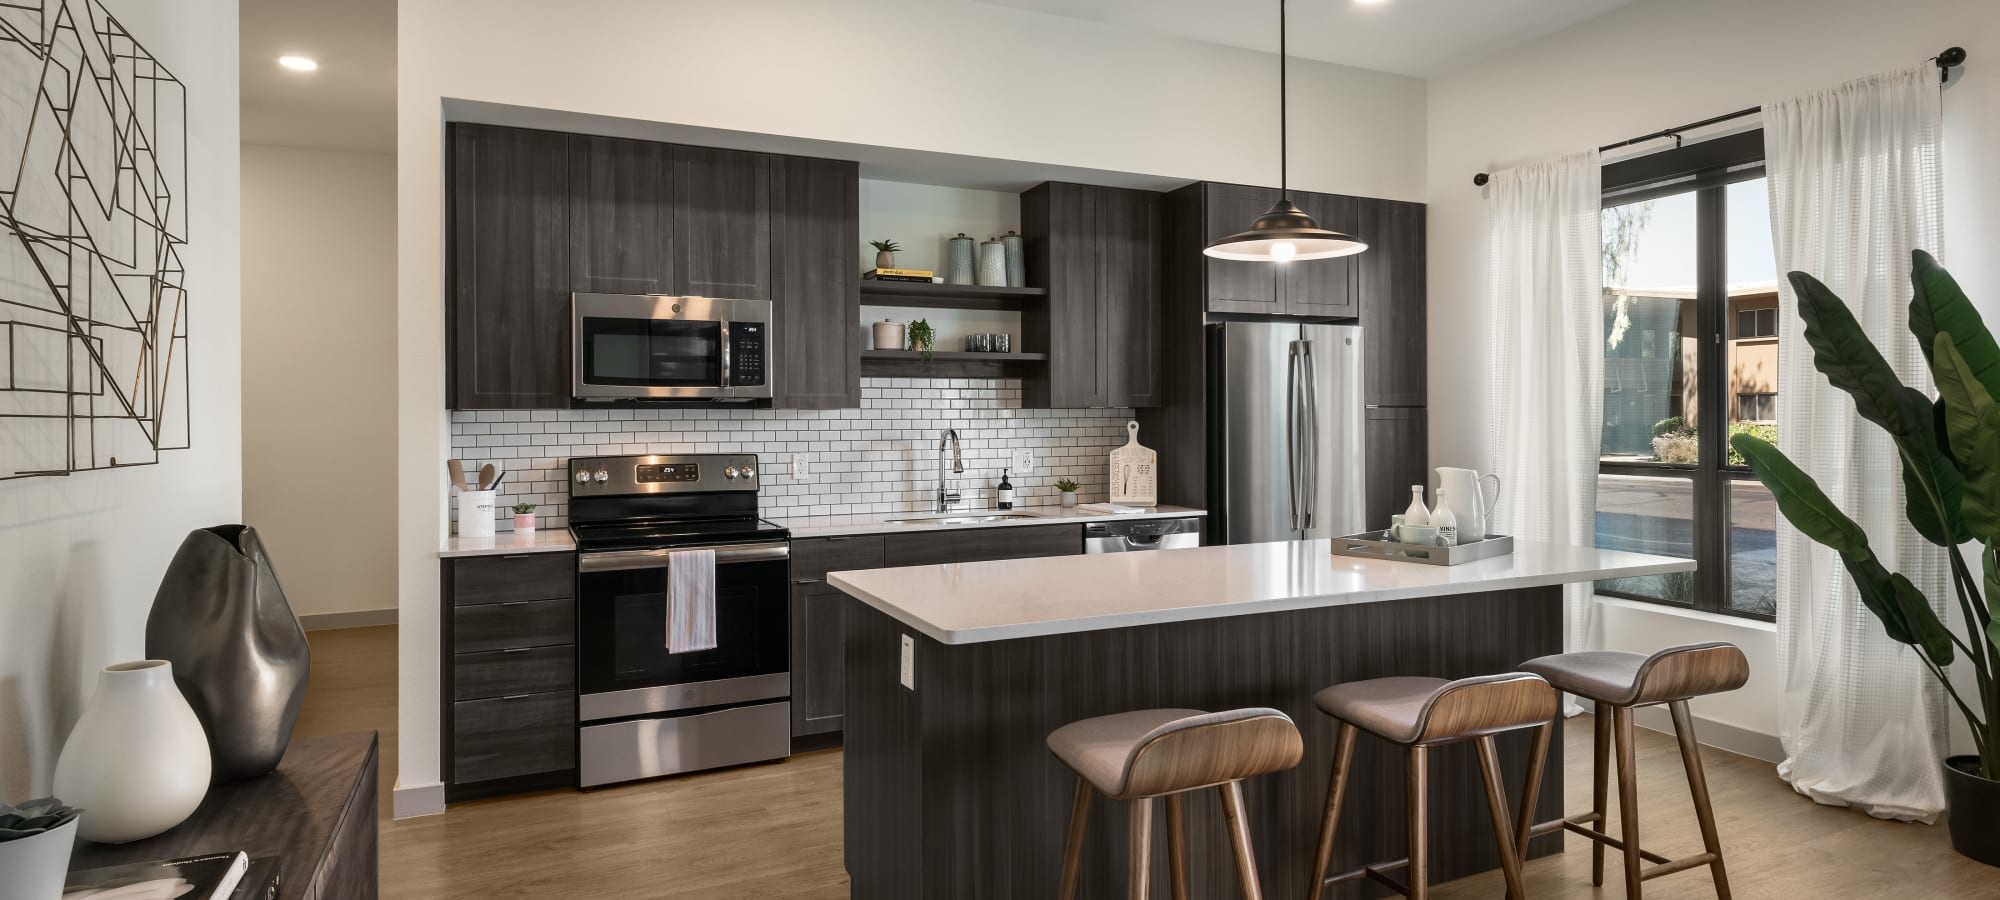 Spacious kitchen with stainless steel appliances at The Astor at Osborn in Phoenix, Arizona